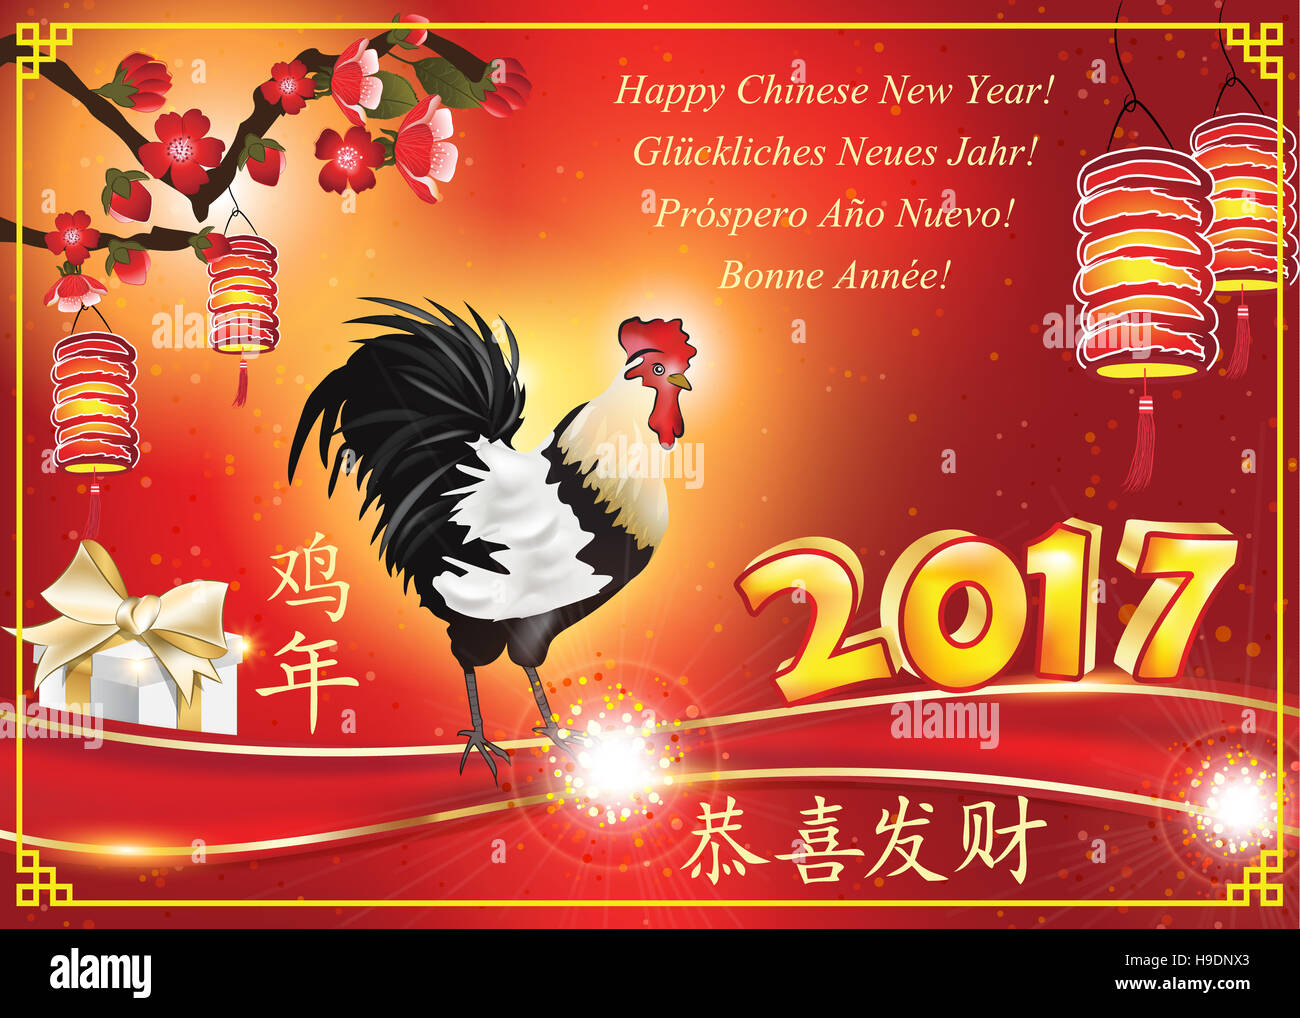 chinese new year 2017 printable greeting card text translation happy new year chinese english french german